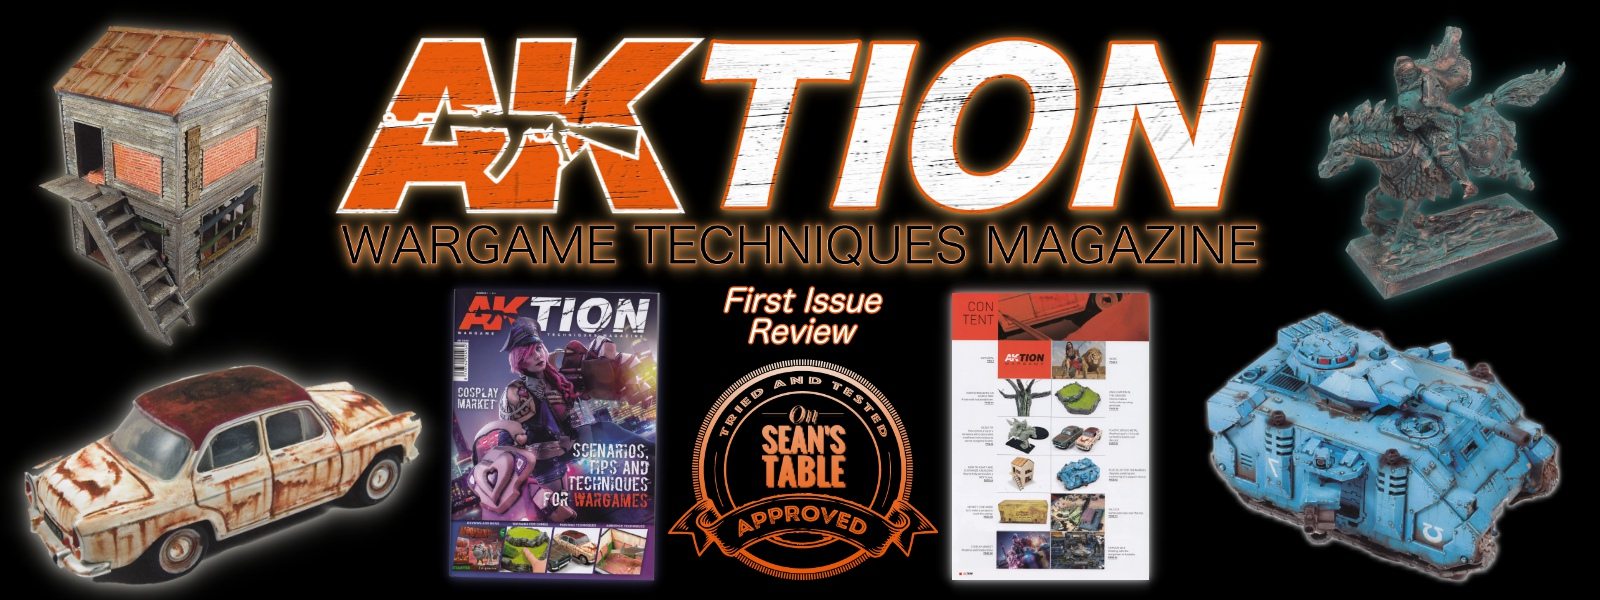 AK Interactive AKtion Wargames Techniques Magazine Review